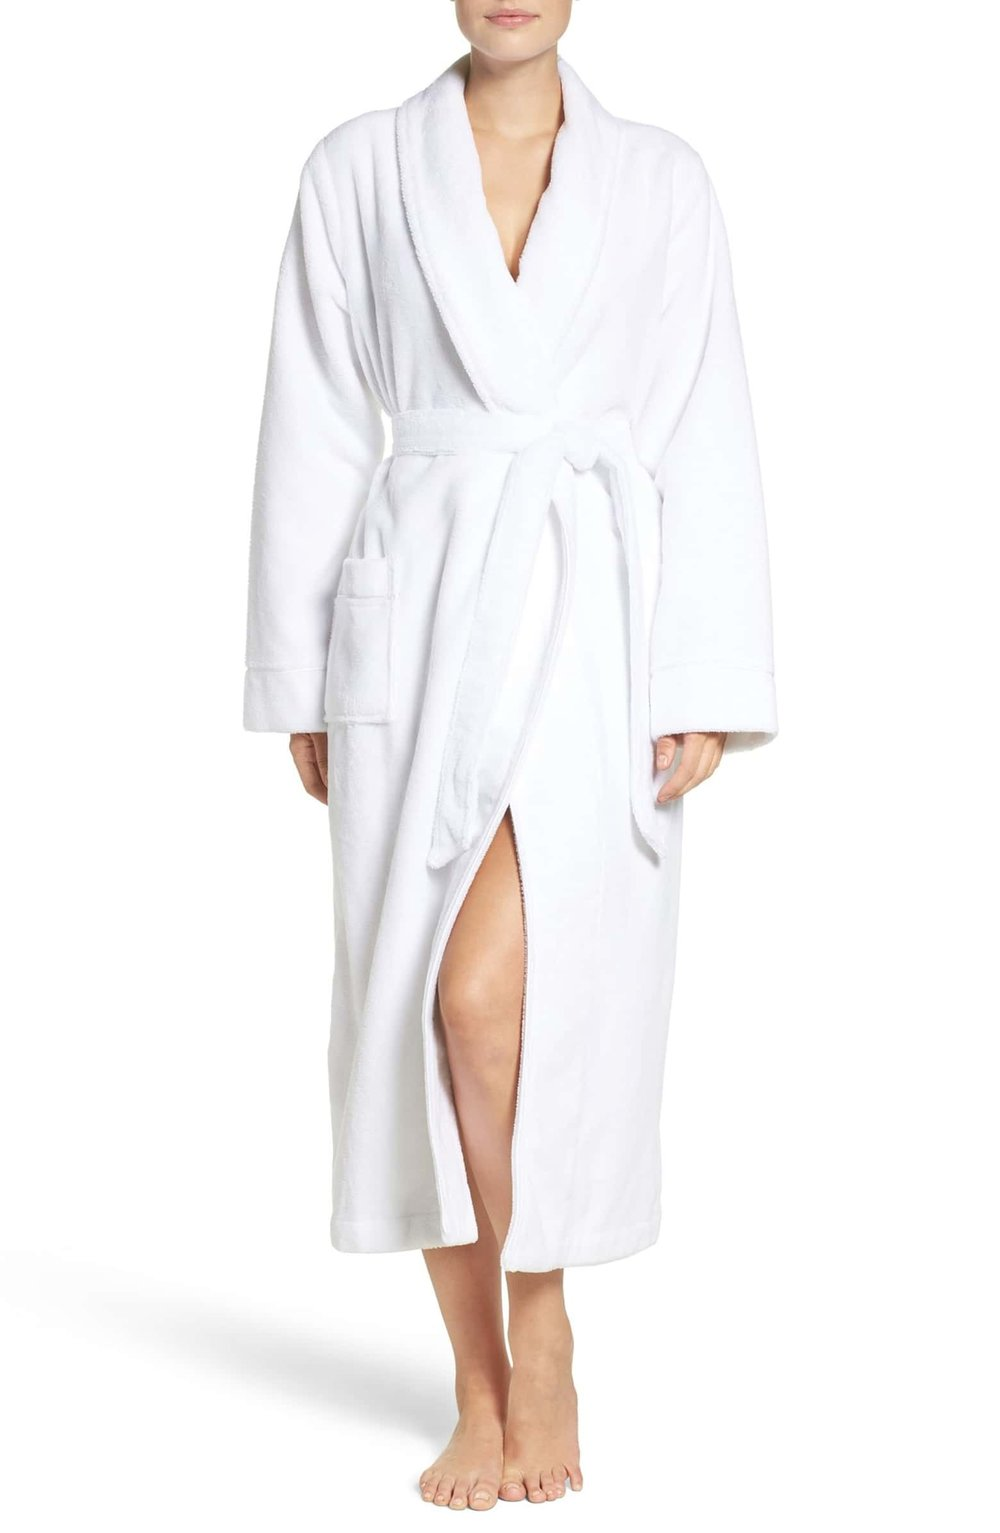 TERRY ROBE - Long robe for getting ready or unready…,or sleeping, or lounging…